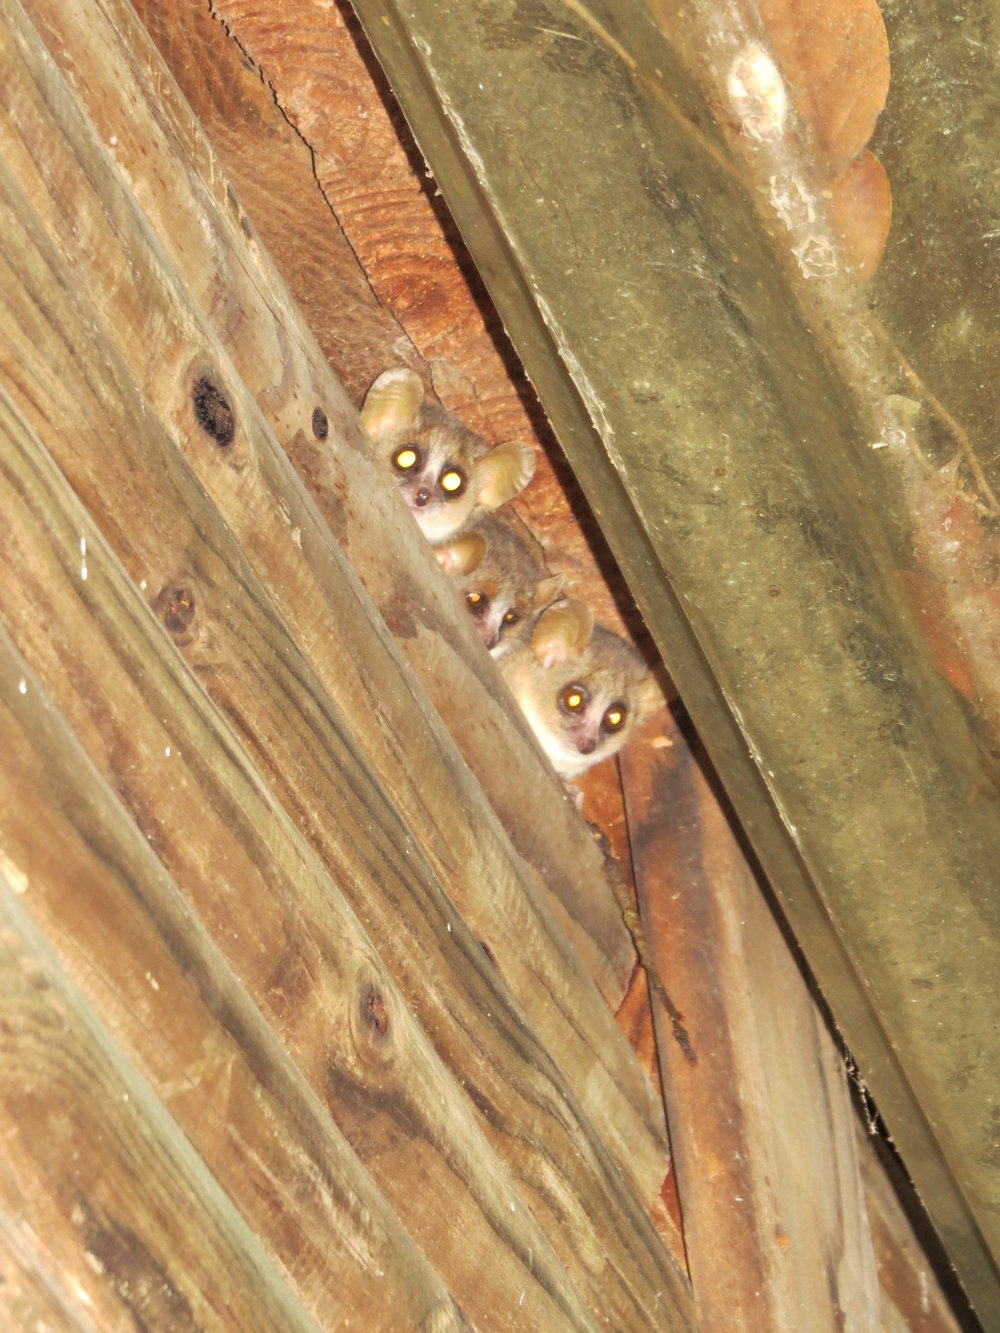 Three mouse lemurs peering out from their nest in the roof of the research station.